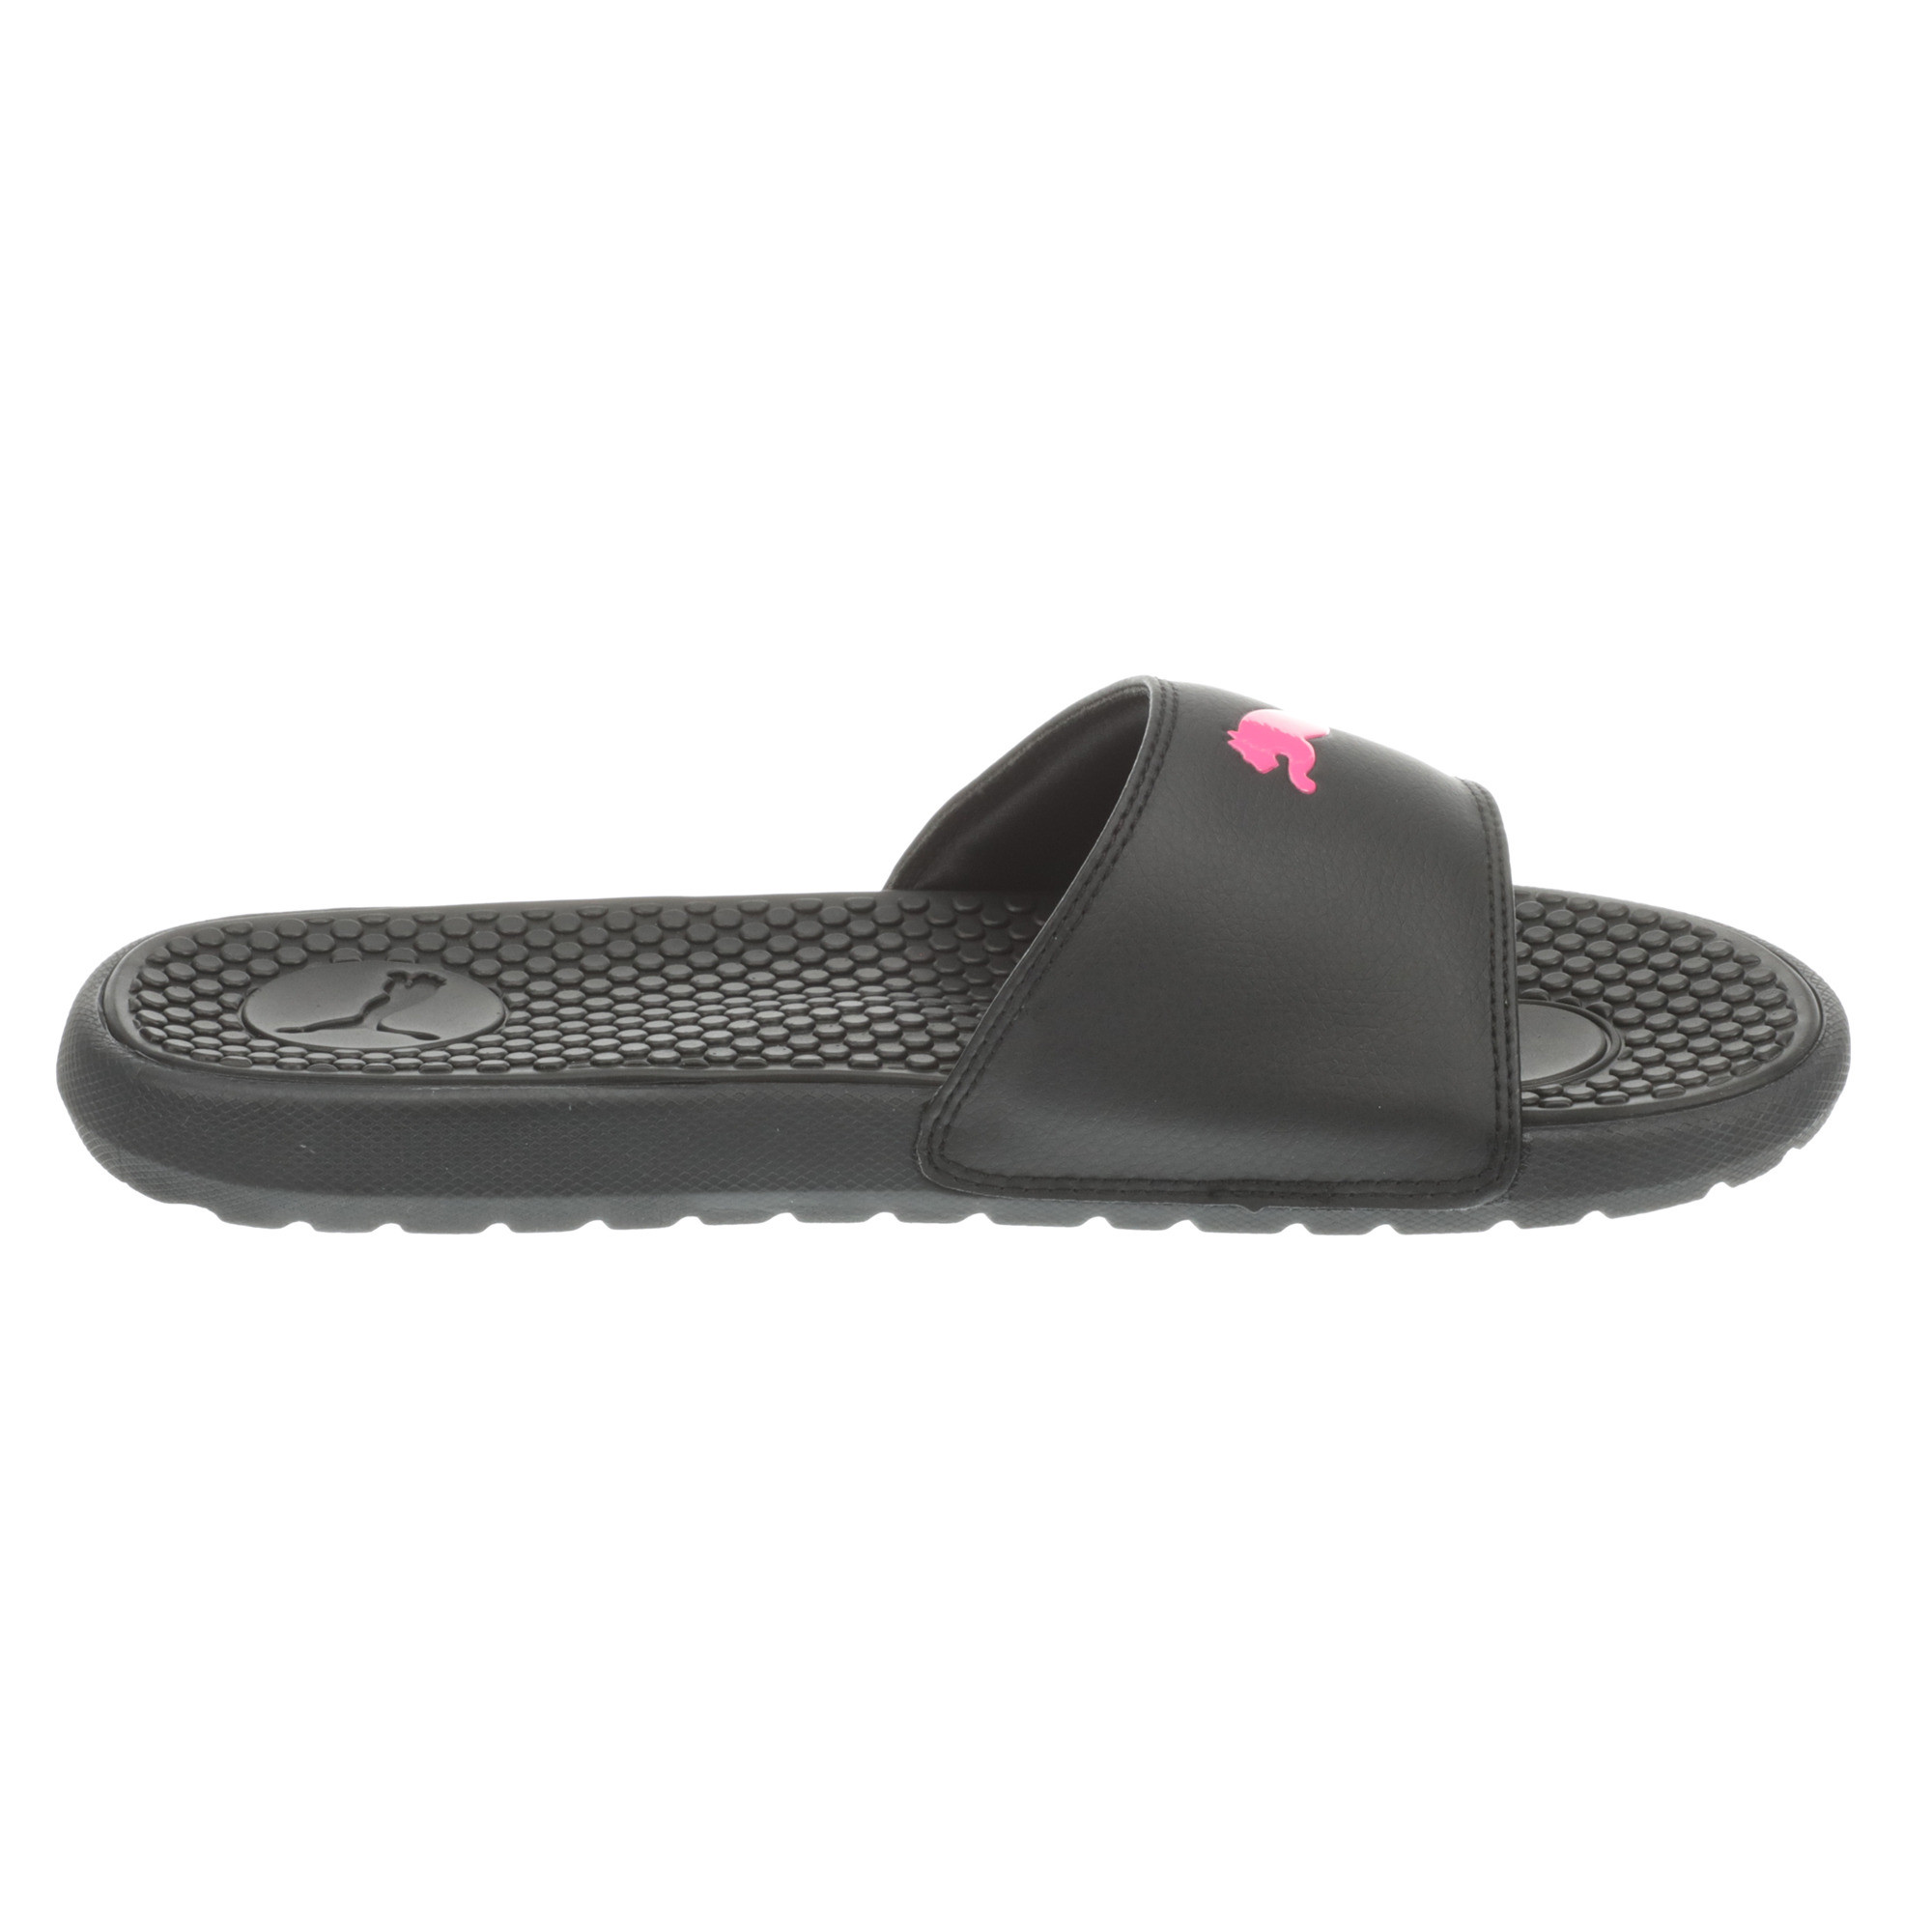 PUMA-Women-039-s-Cool-Cat-Sport-Slides thumbnail 15